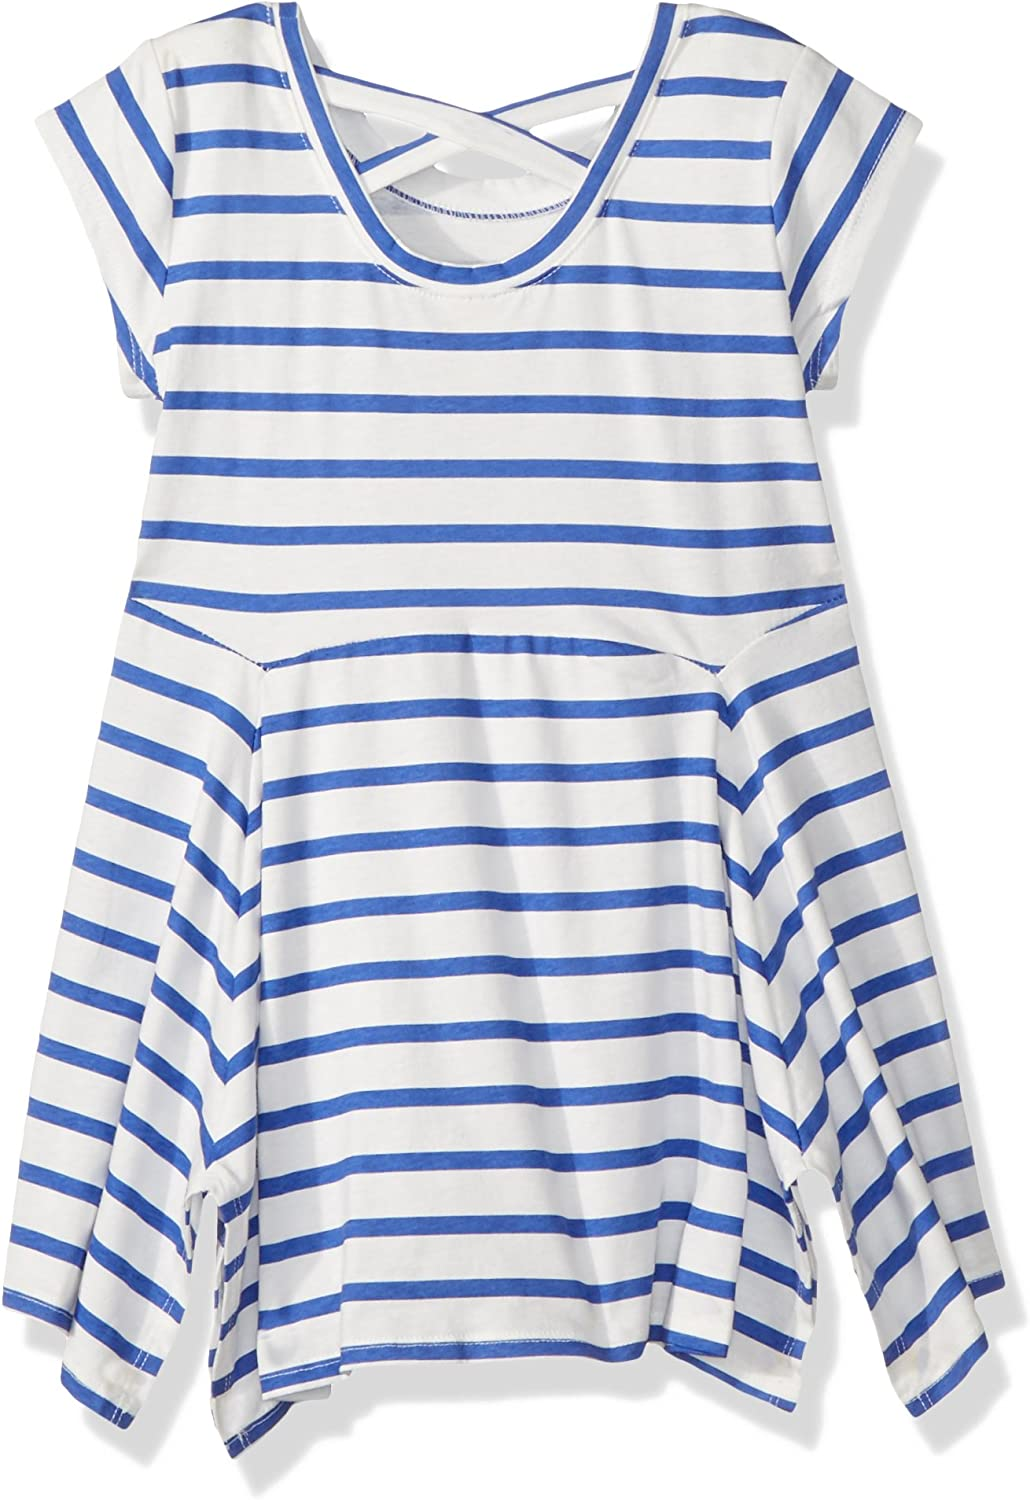 OshKosh BGosh Girls Short-Sleeve Knit Tunic